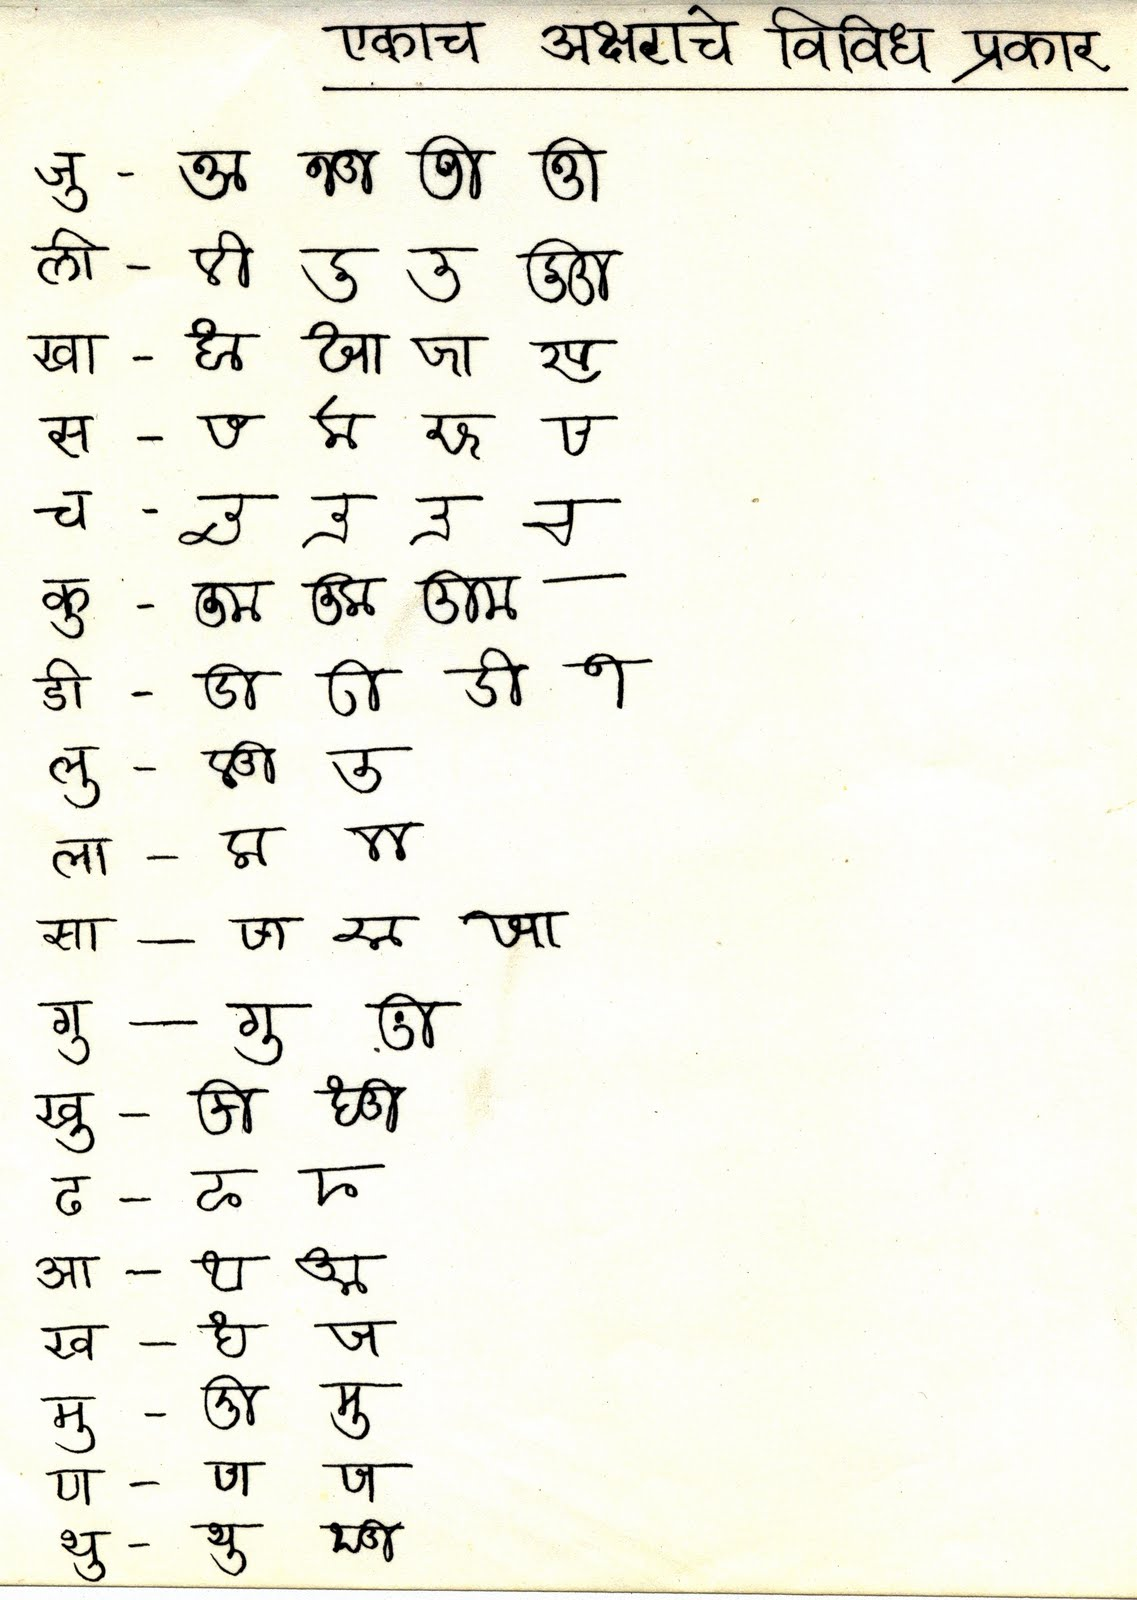 I have scanned and uploaded some of the tutorial MoDi script lessons to learn and historical letters to practice. For those who wish to use the TTF MoDi ...